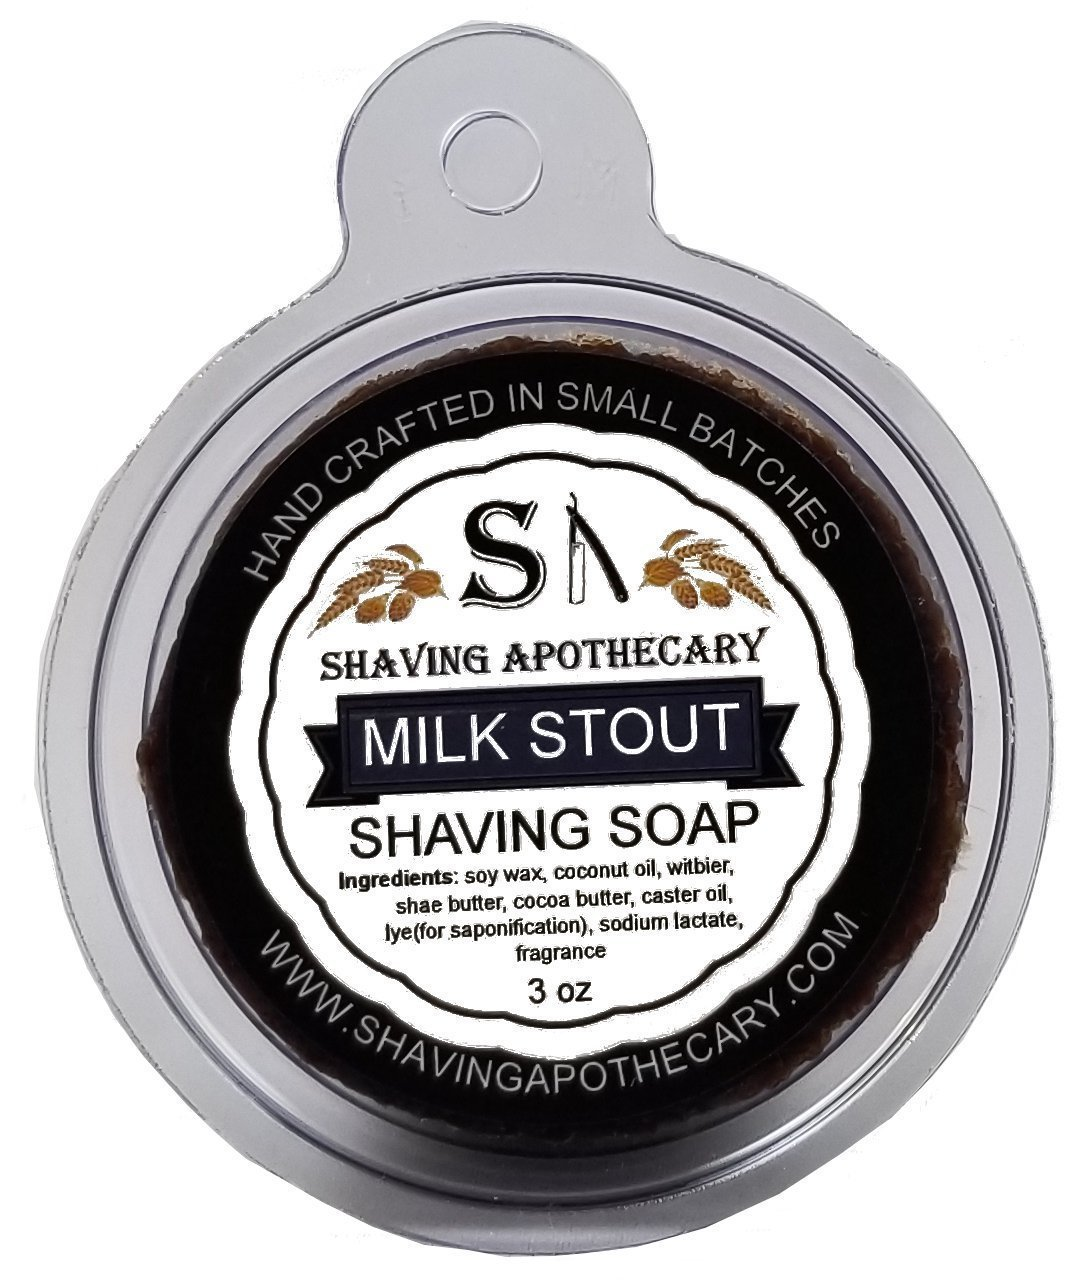 Shaving Apothecary Shaving Soap - Milk Stout with real beer